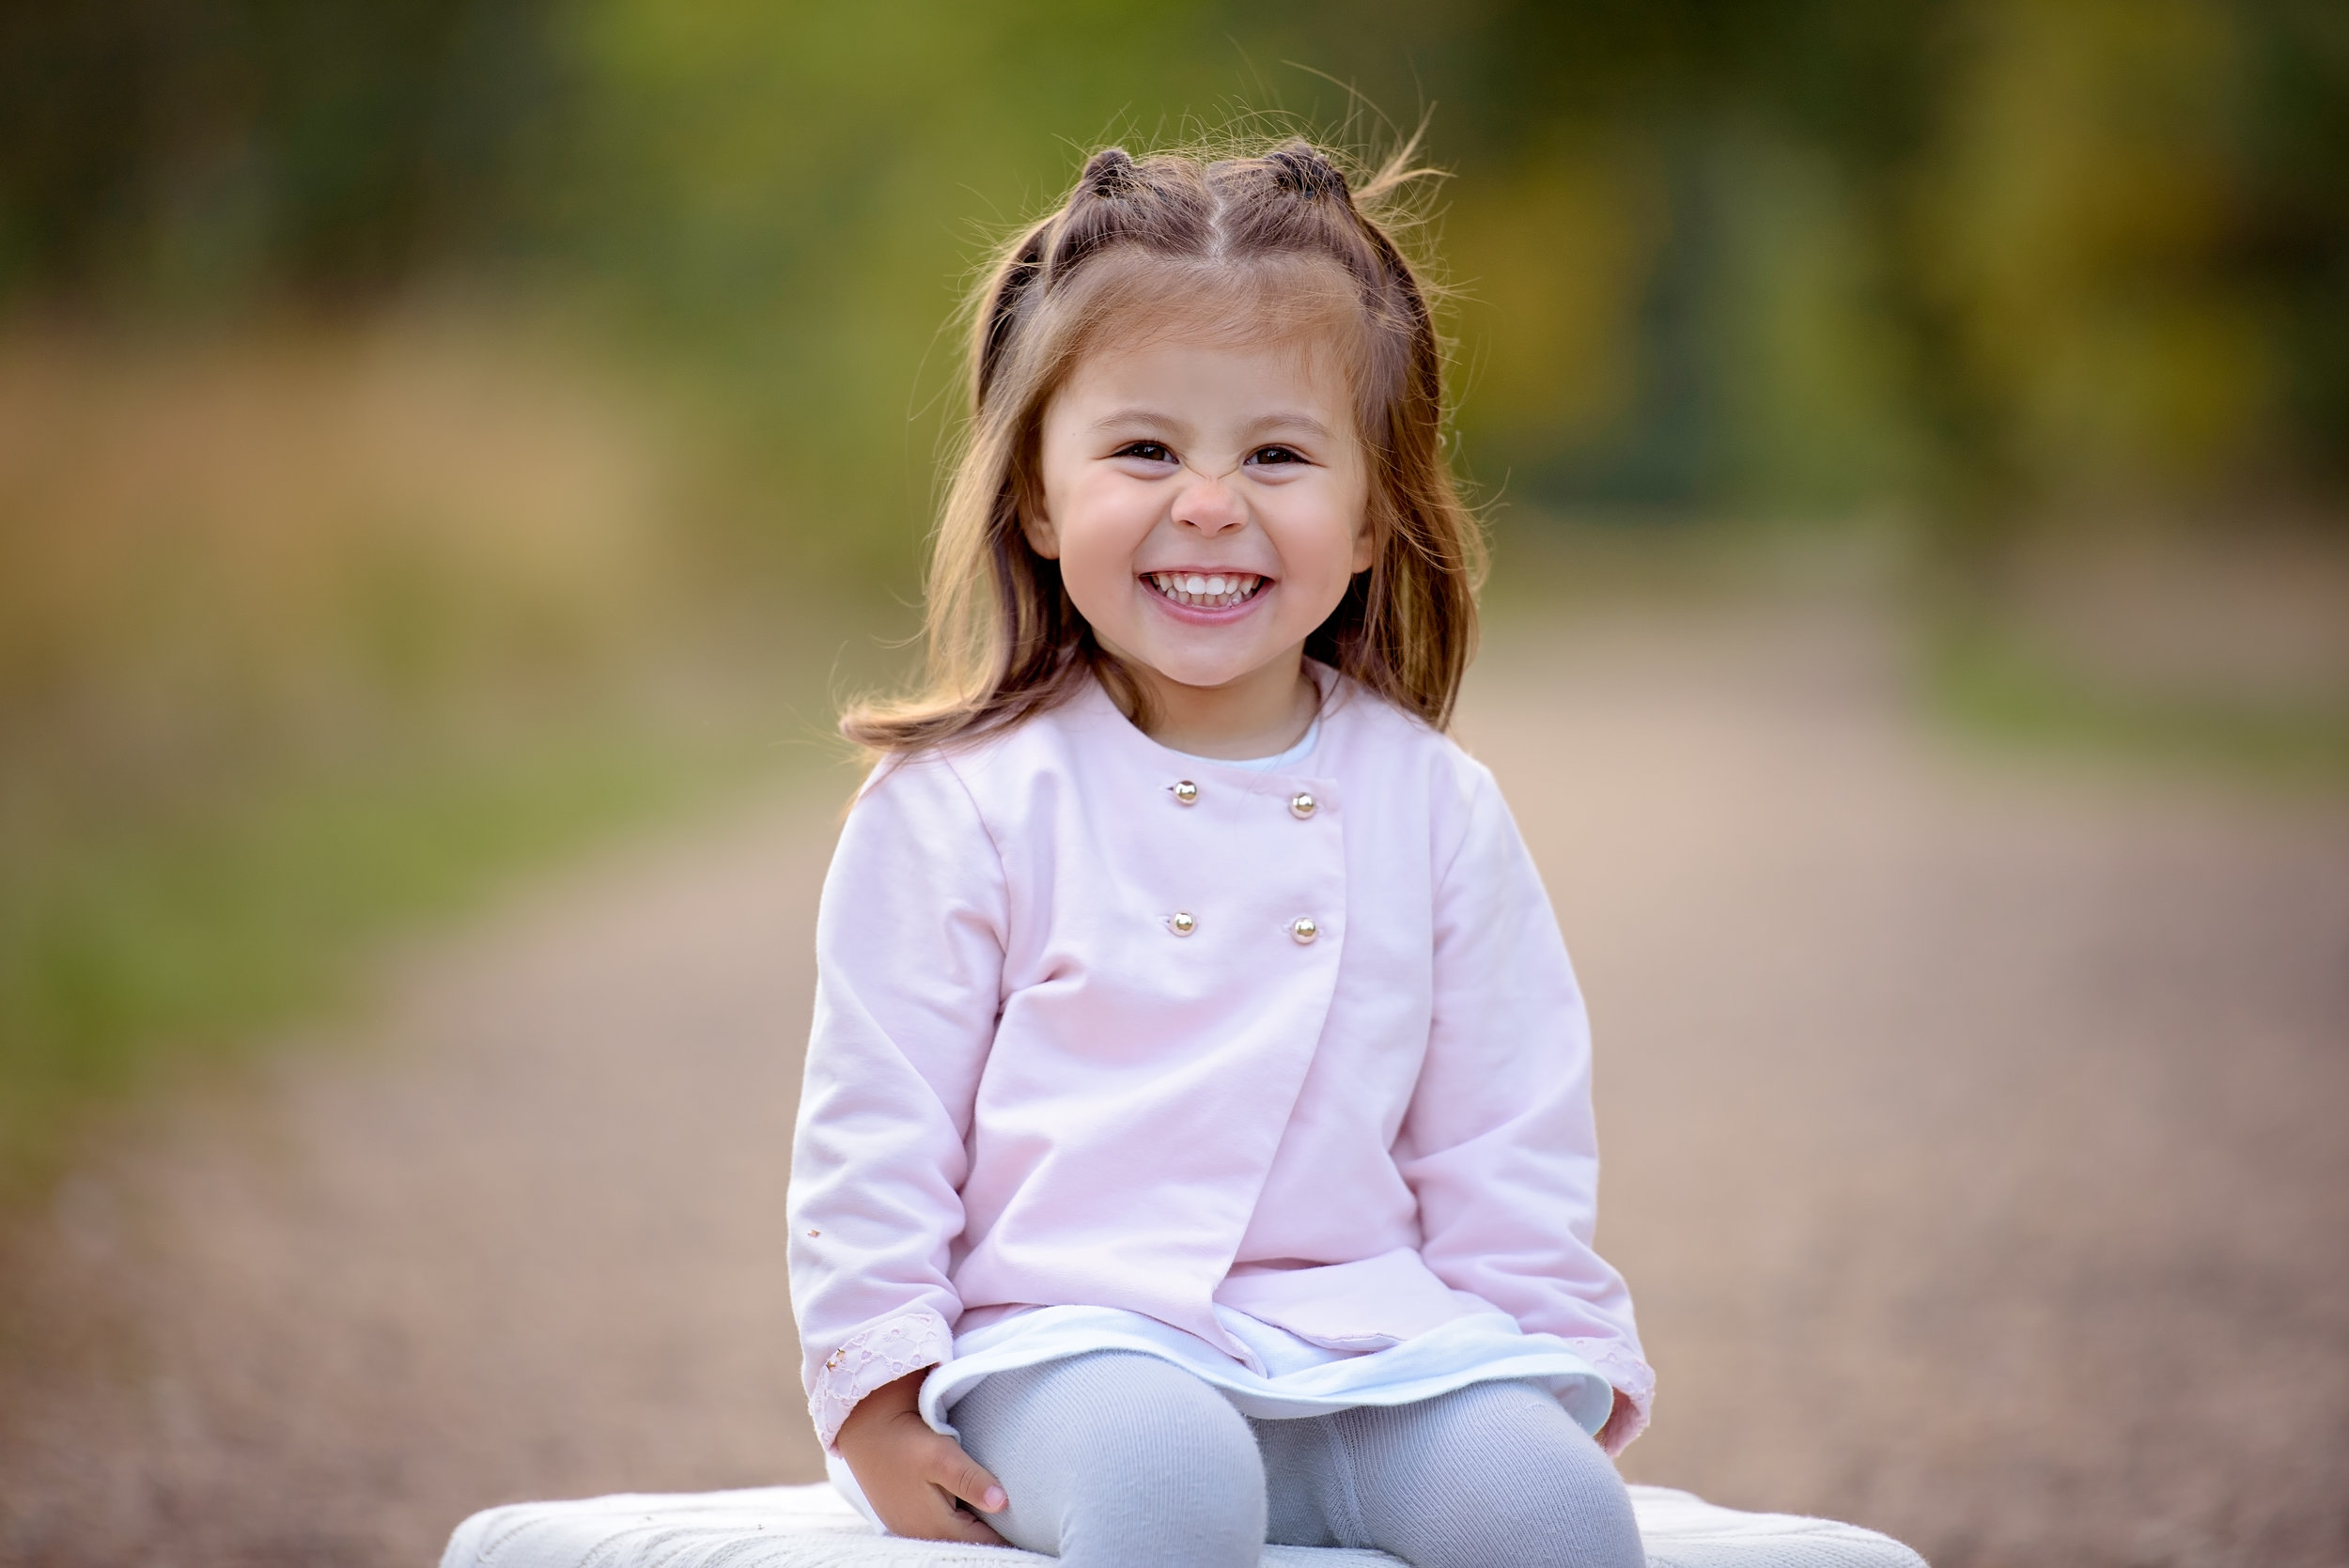 Portrait of smiling girl outdoors in Autumn